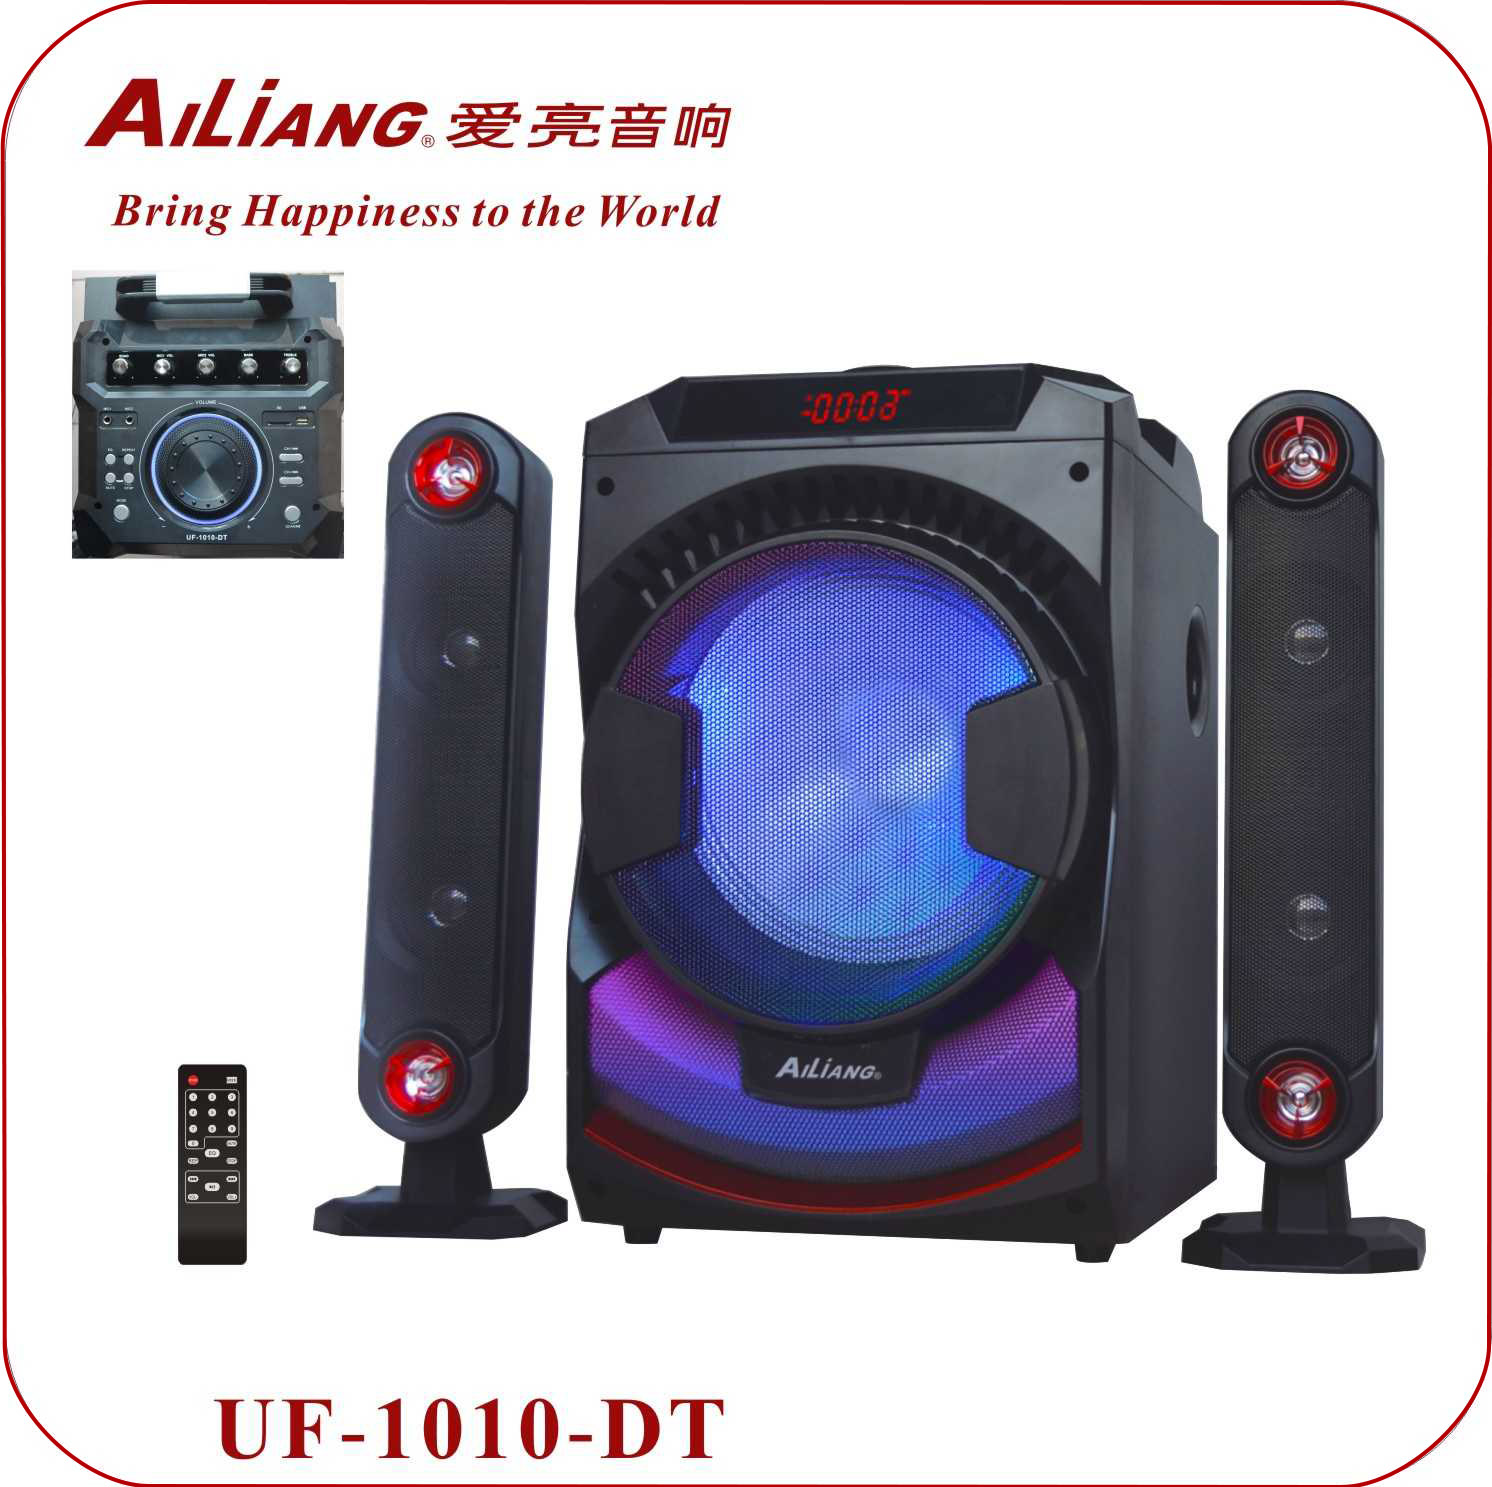 10 Home Theater 2 1 Active Subwoofer Speaker For Sony Design With Usb Sd Fm Bt Mode Uf 1010 Dt View Best 2 1 Home Theater Speaker Ailiang Oem Product Details From Guangzhou Hualiang Xinxing Electronic Manufacturing Co Ltd